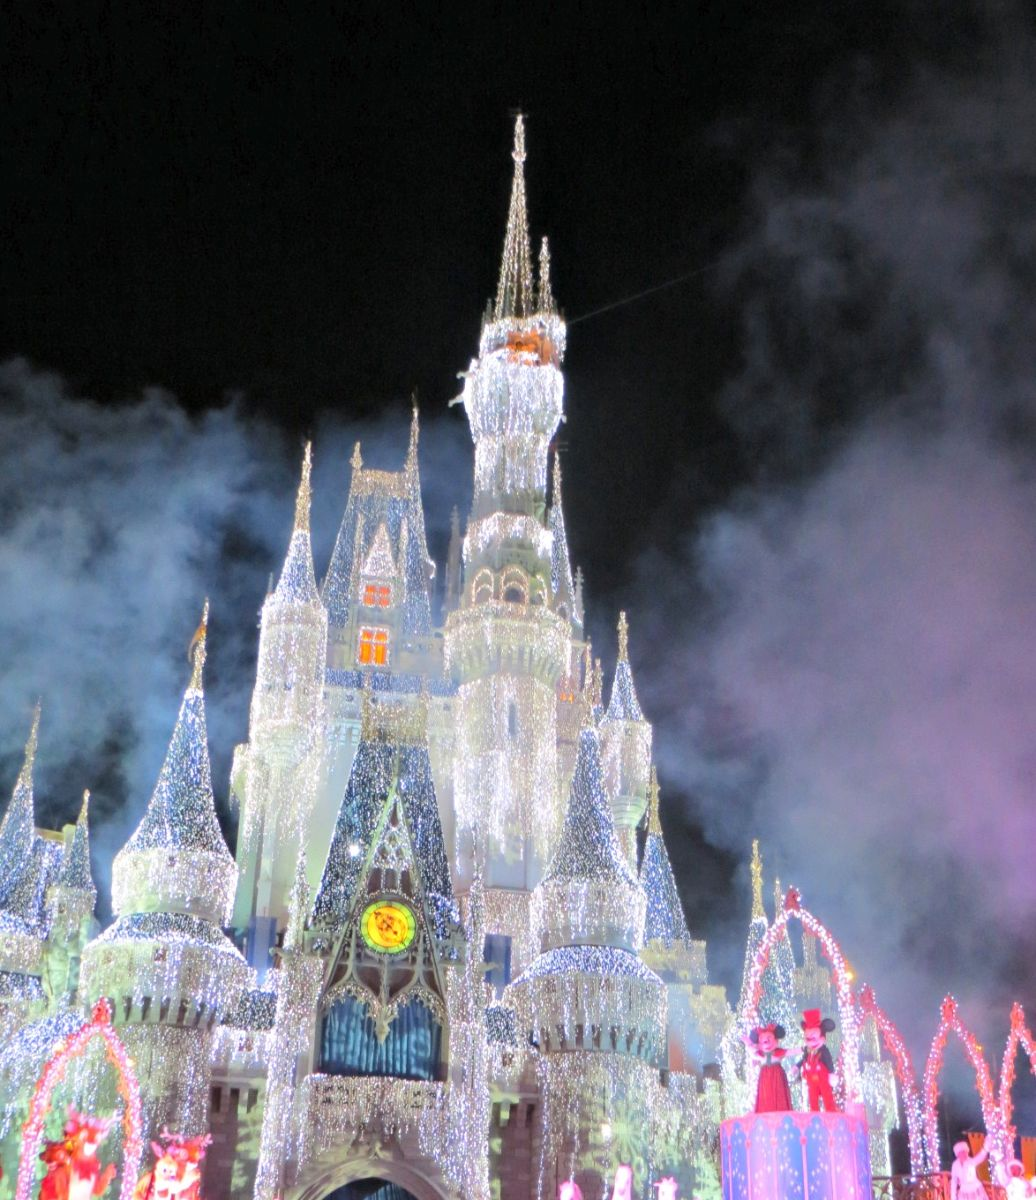 Celebrate the Season at Mickey's Very Merry Christmas Party